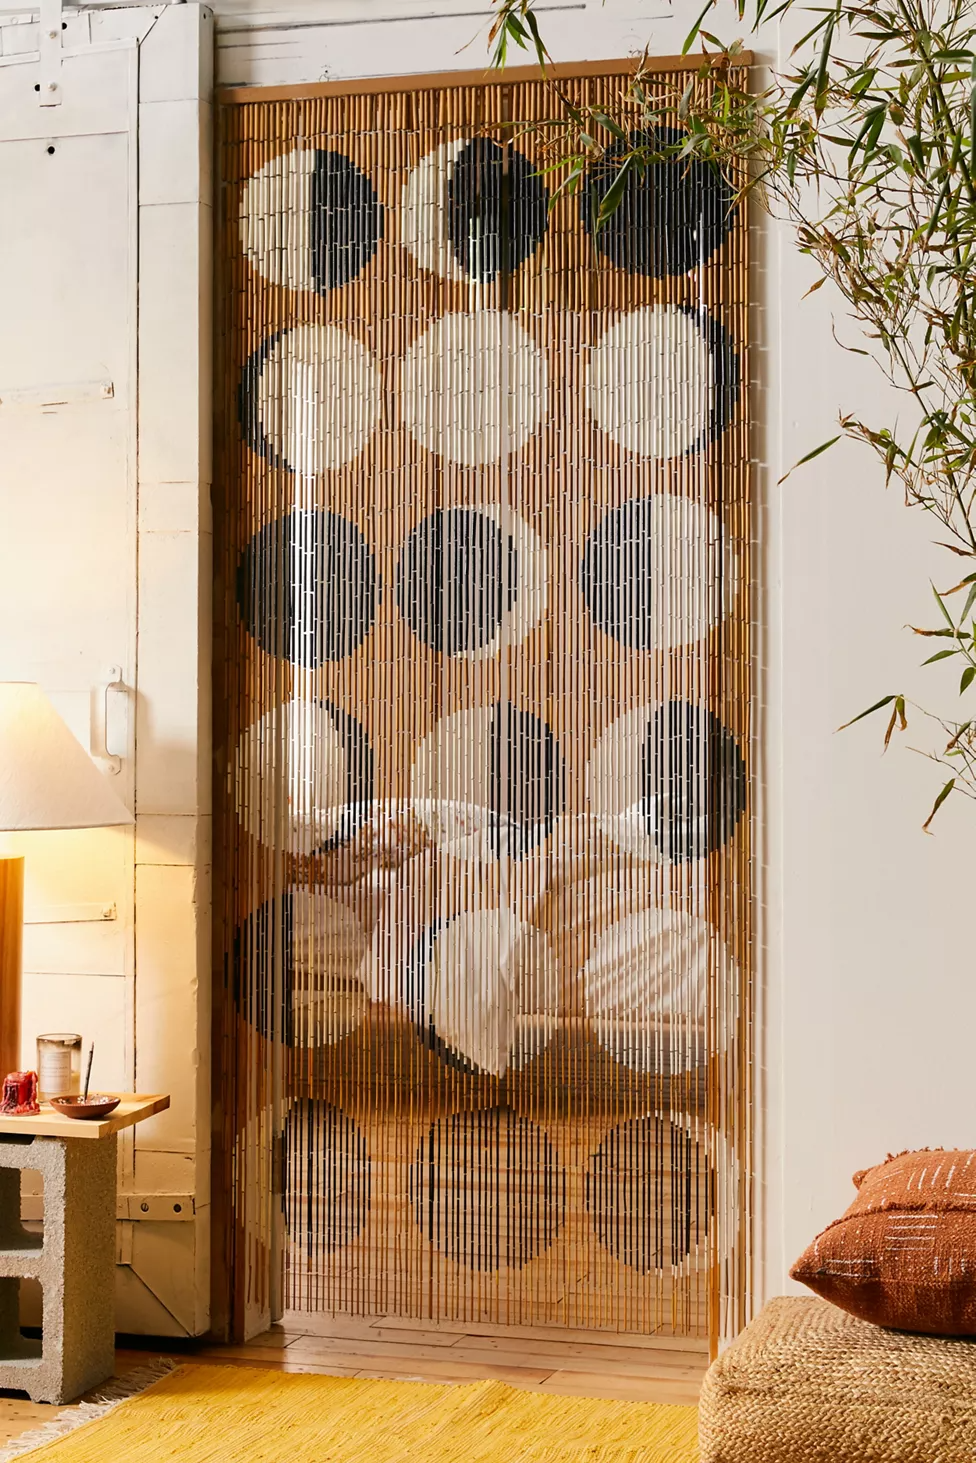 Moon Phases Bamboo Beaded Curtain In 2020 Bamboo Beaded Curtains Bamboo Curtains Beaded Curtains